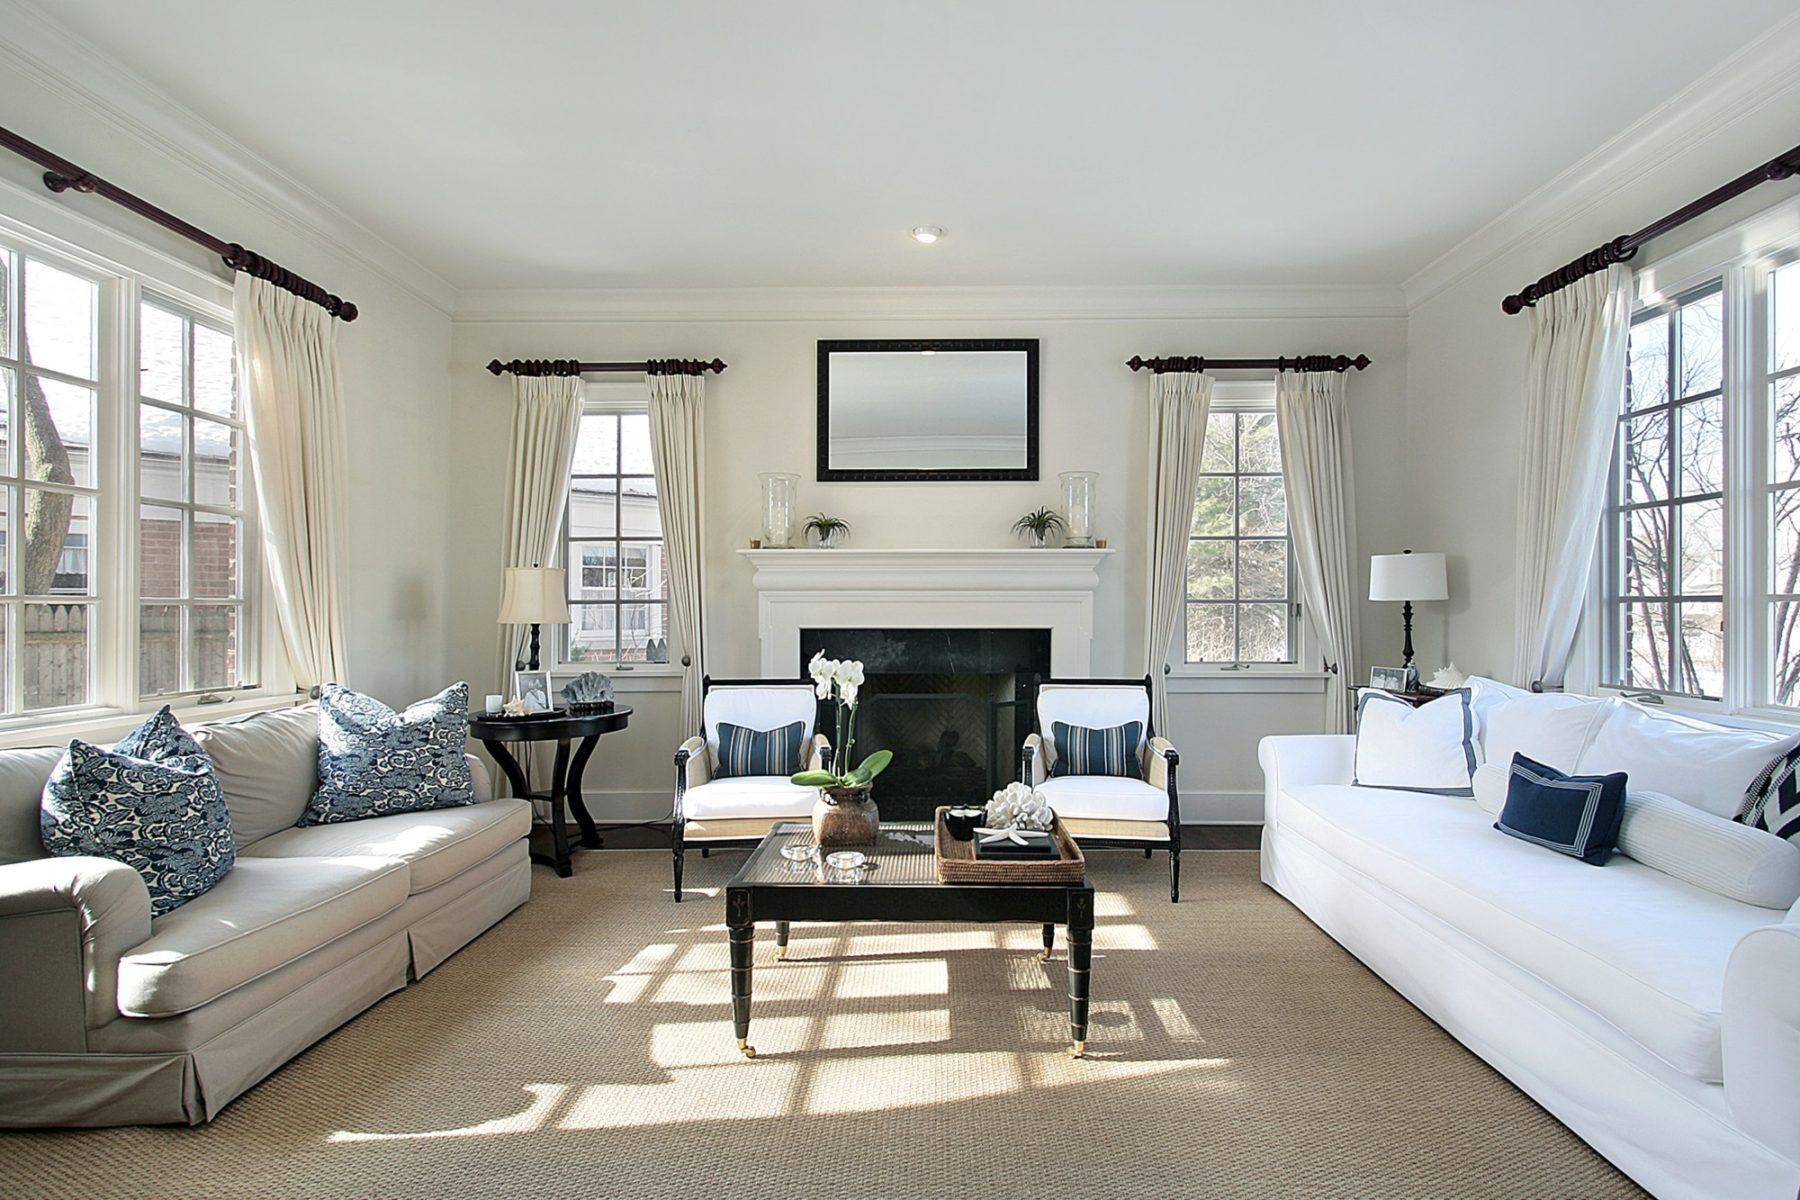 St Louis Realty St Louis Real Estate St Louis Homes Casual Living Room Design Casual Living Rooms Living Room Designs